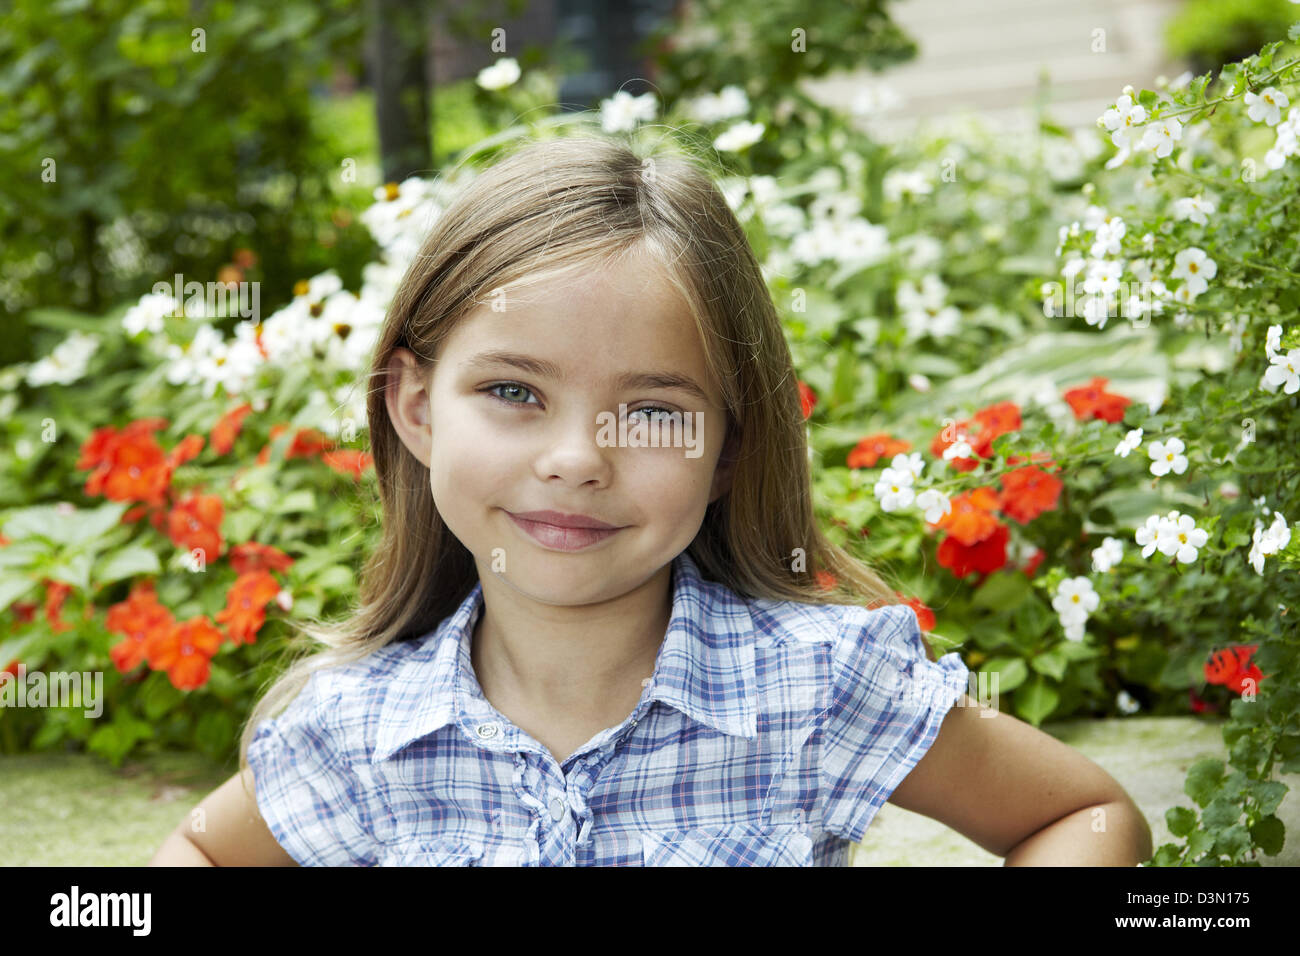 Summer portrait of 7 year old girl - Stock Image